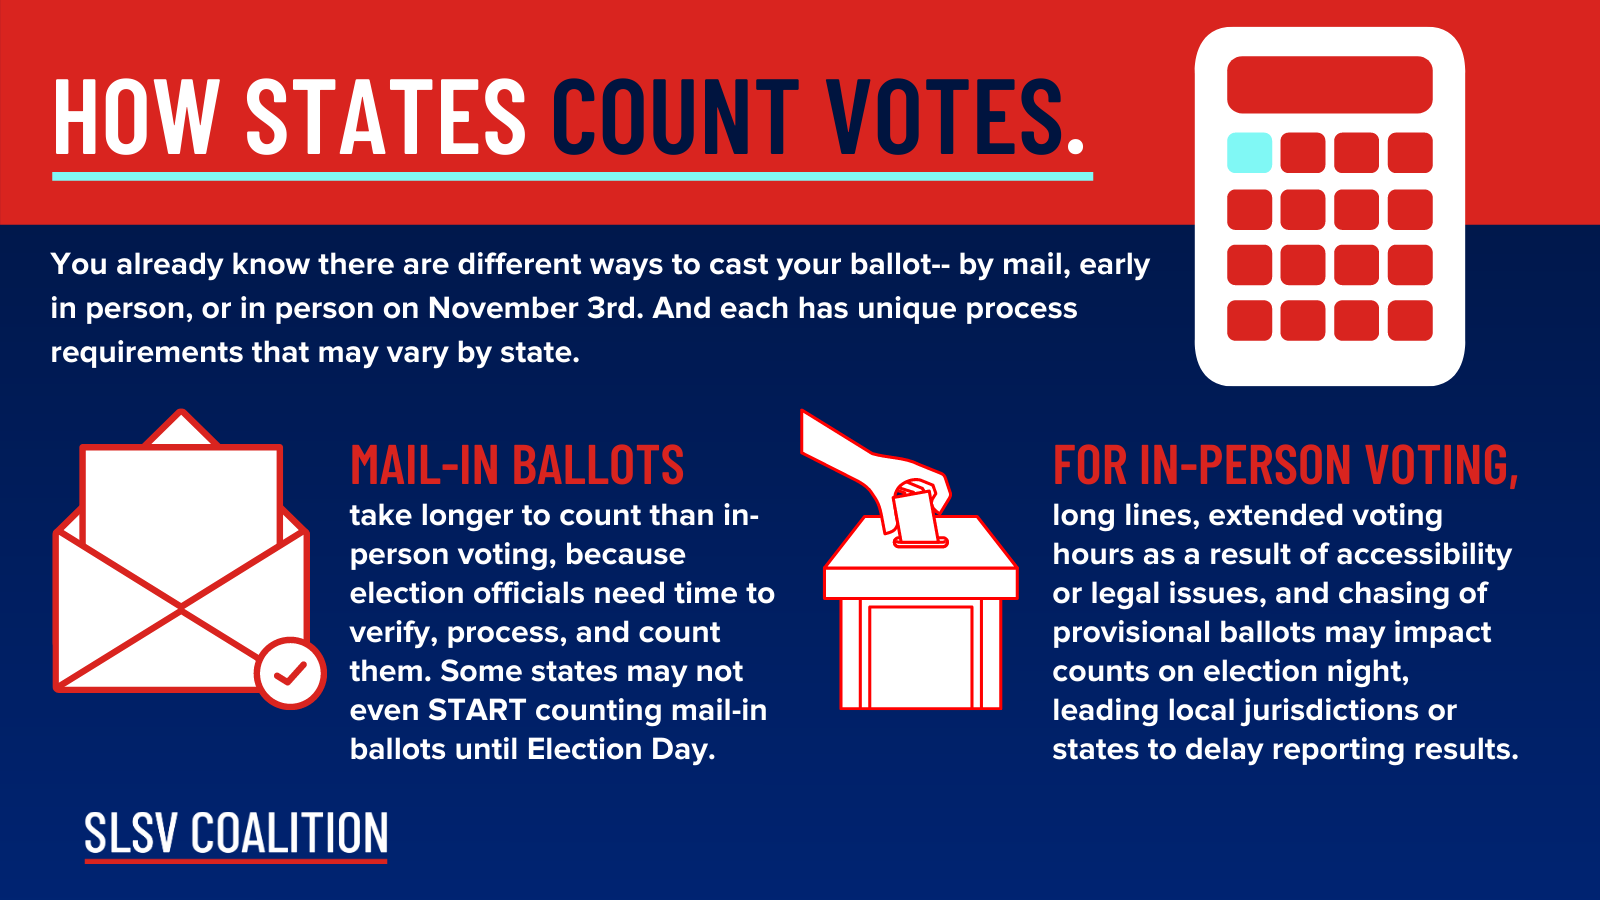 How States Count Votes